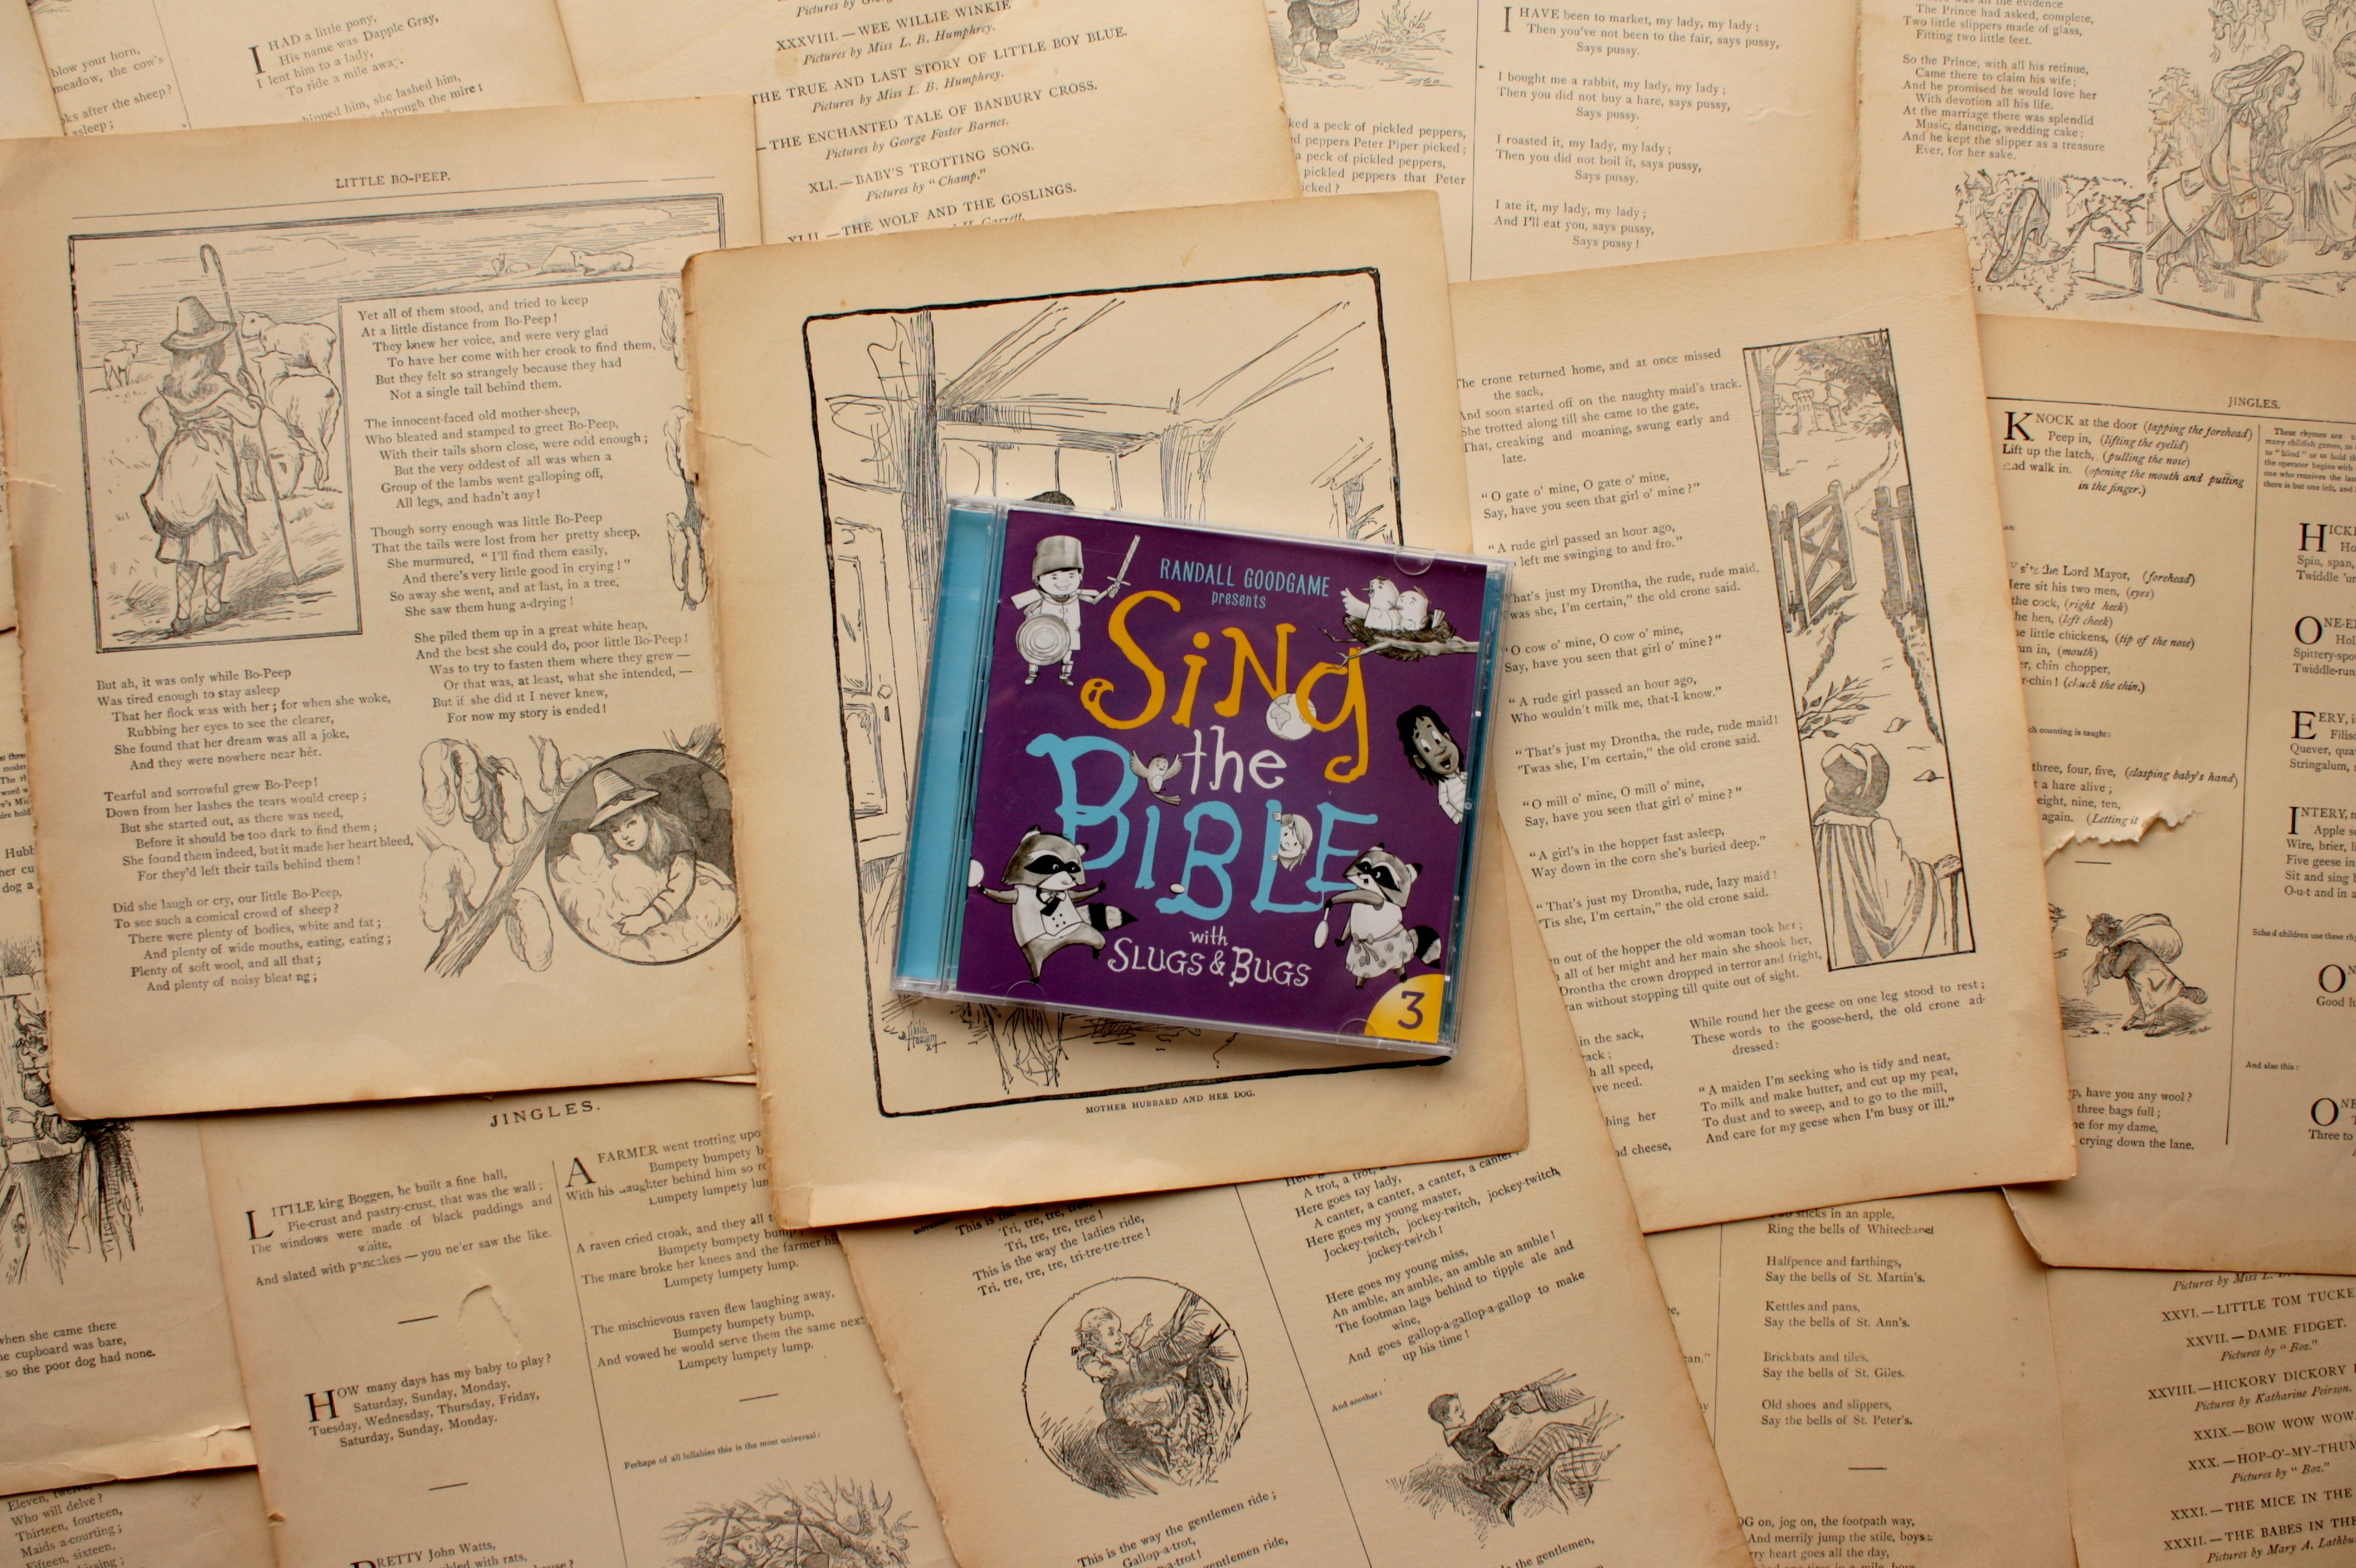 Slugs & Bugs | Sing the Bible, Vol. 3 (Giveaway!)